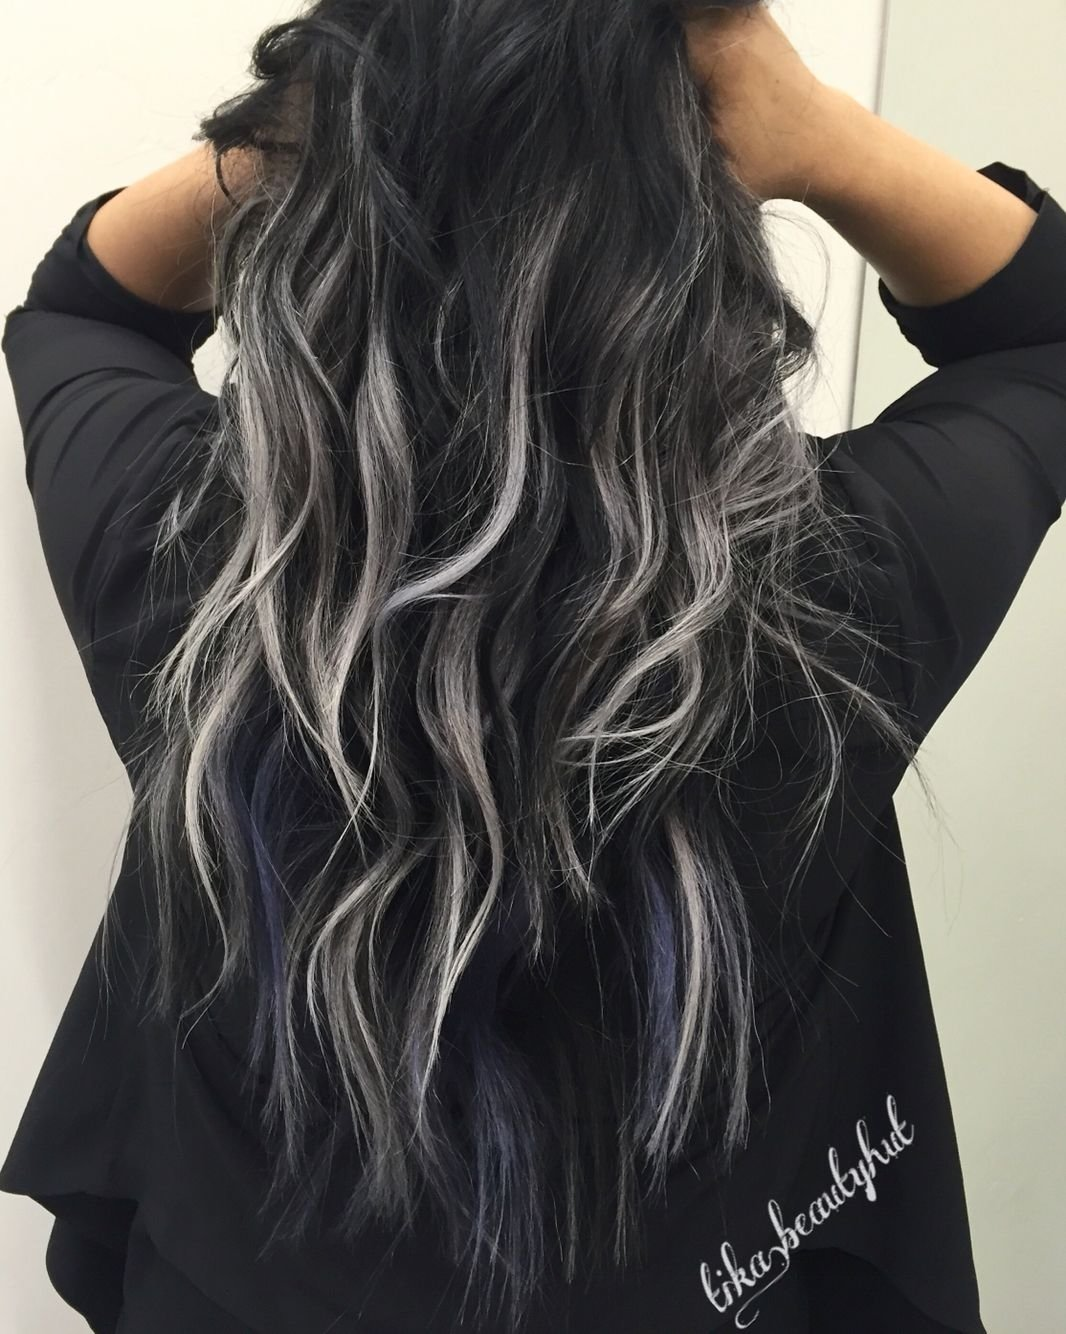 10 Pretty Black Hair With Highlights Ideas black silver balayage curly hair pinteres 2020